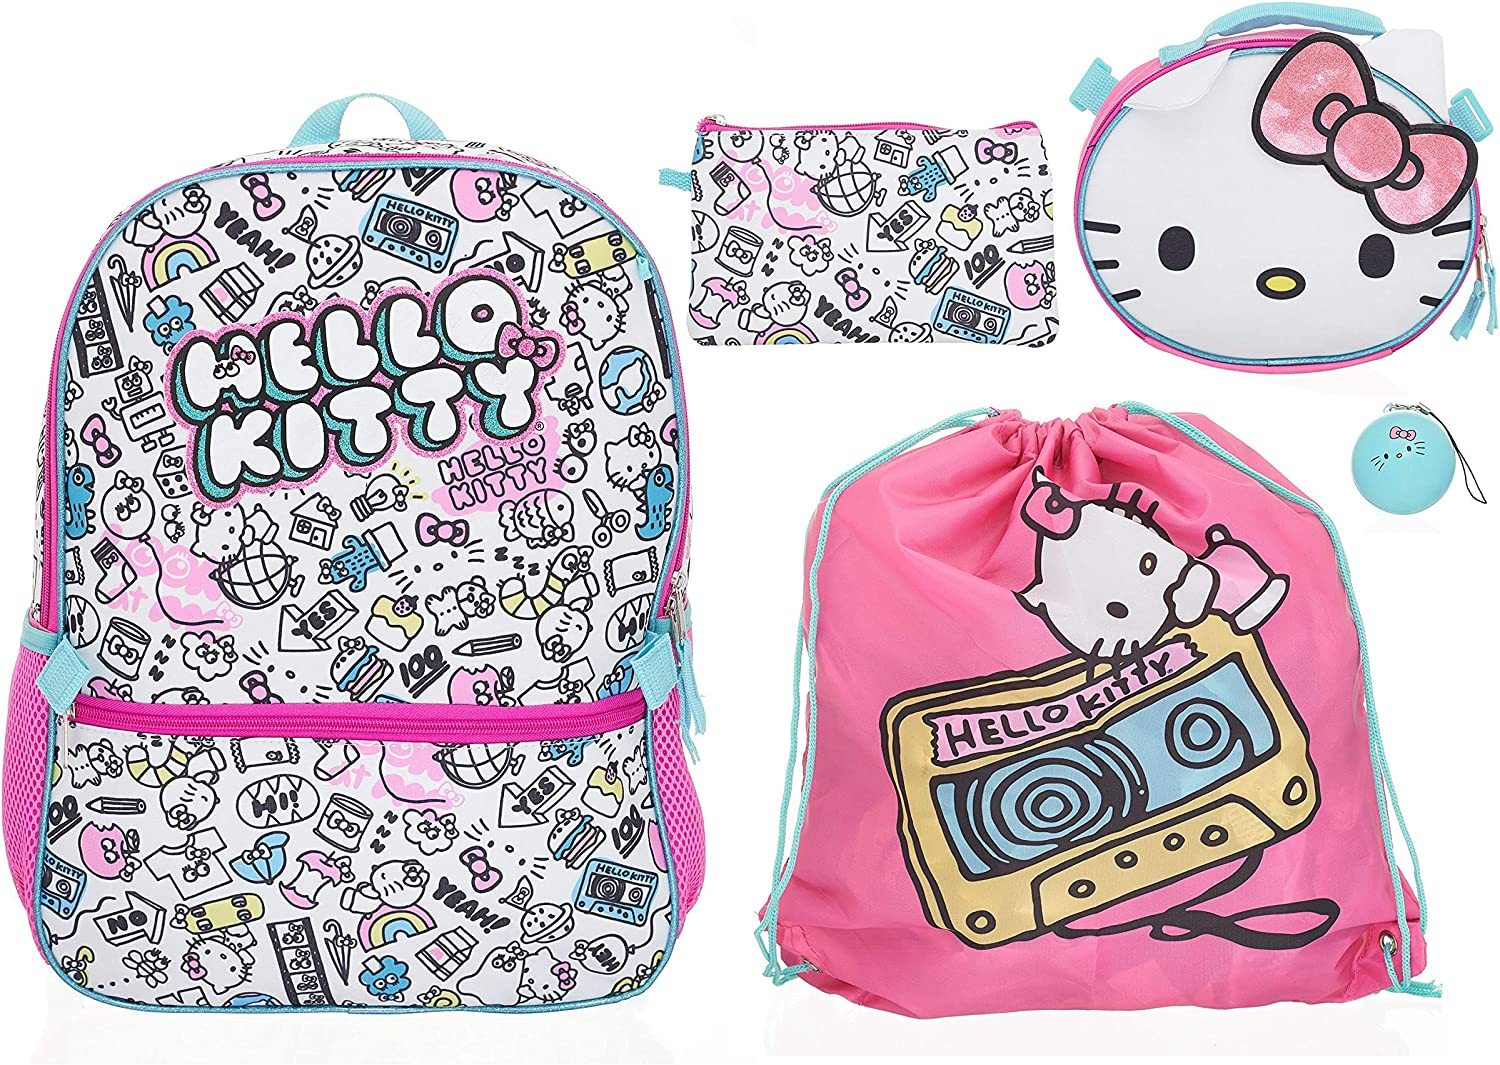 Hello Kitty 5 Piece Backpack Set for Girls, Glitter Printed Schoolbag with Front and Side Mesh Pocket, Lunch Bag, Pencil Case, Cinch Rucksack and Ball Dangle, Kid's Daypack for School, Camping or Travel